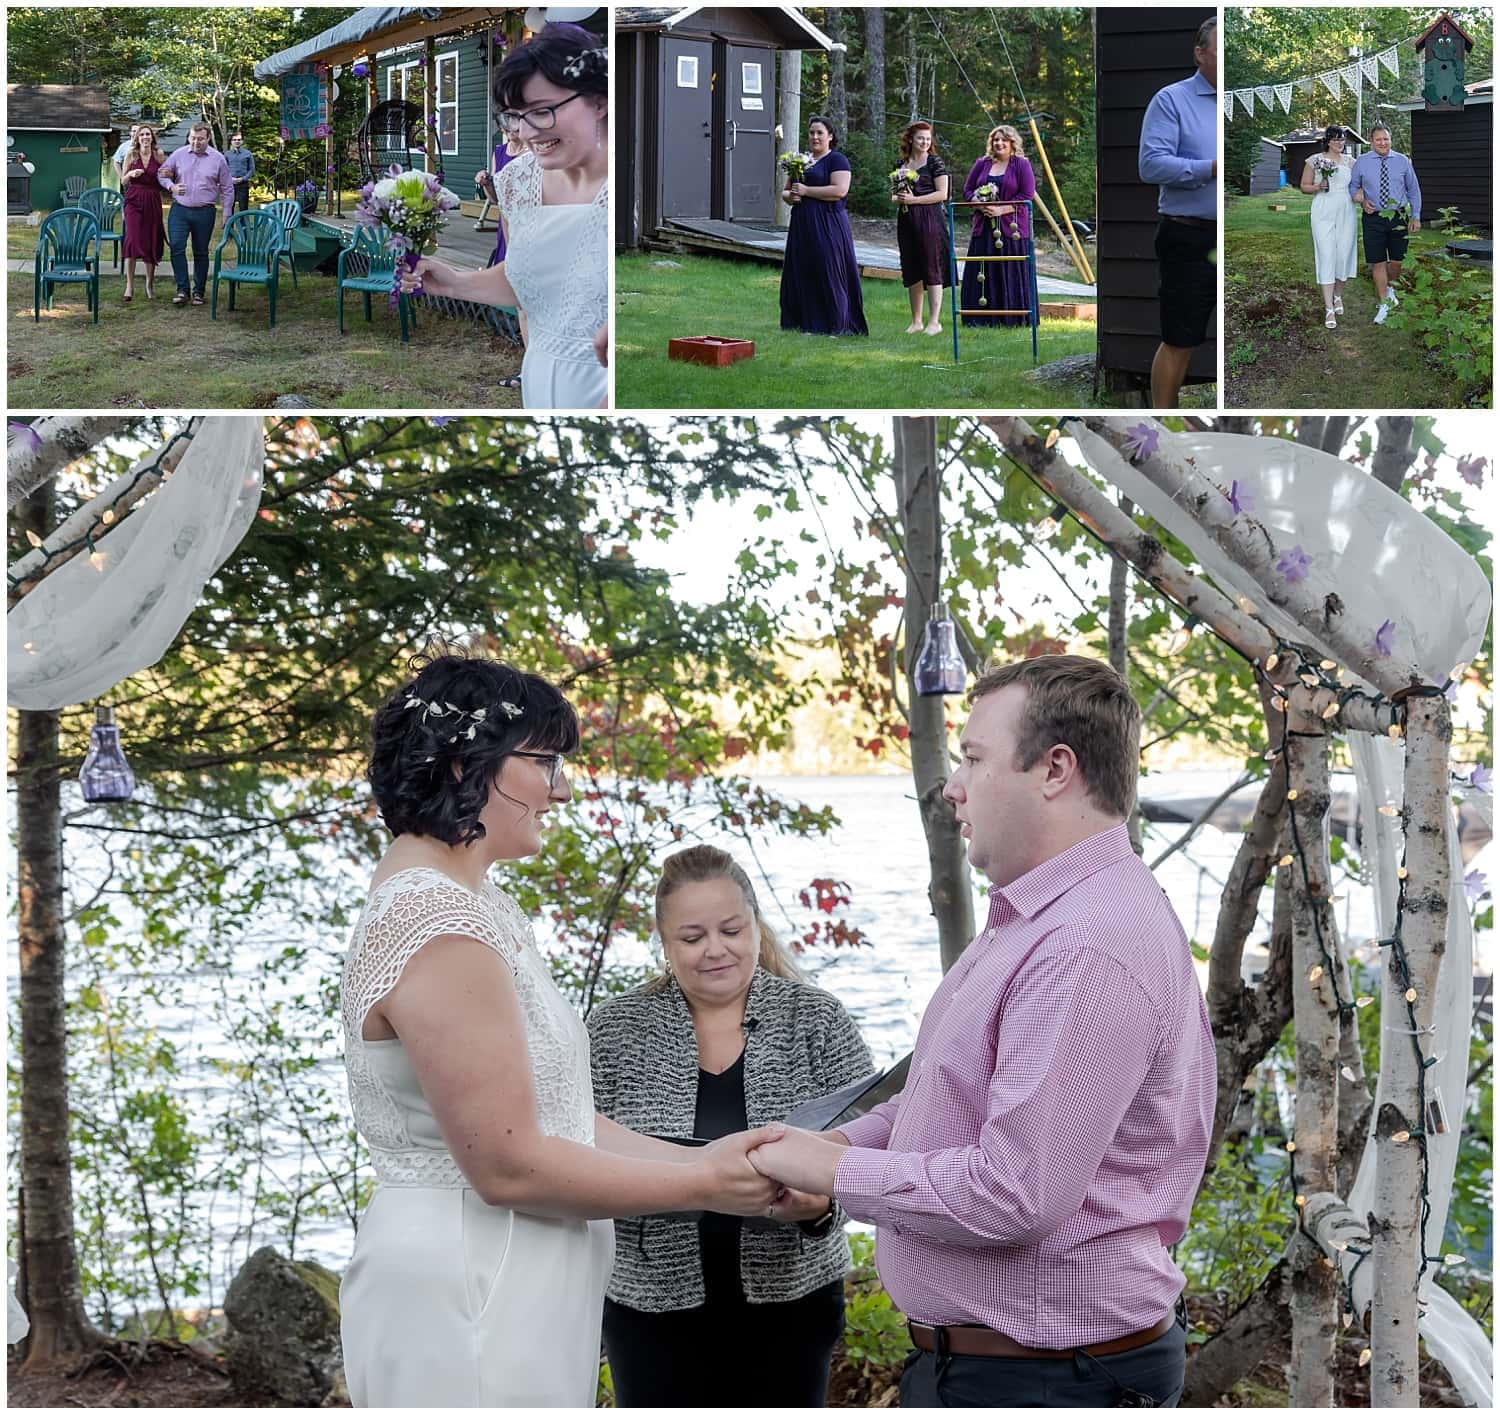 A bride and groom get married during an intimate wedding ceremony at a cottage in Hubbards NS during covid.